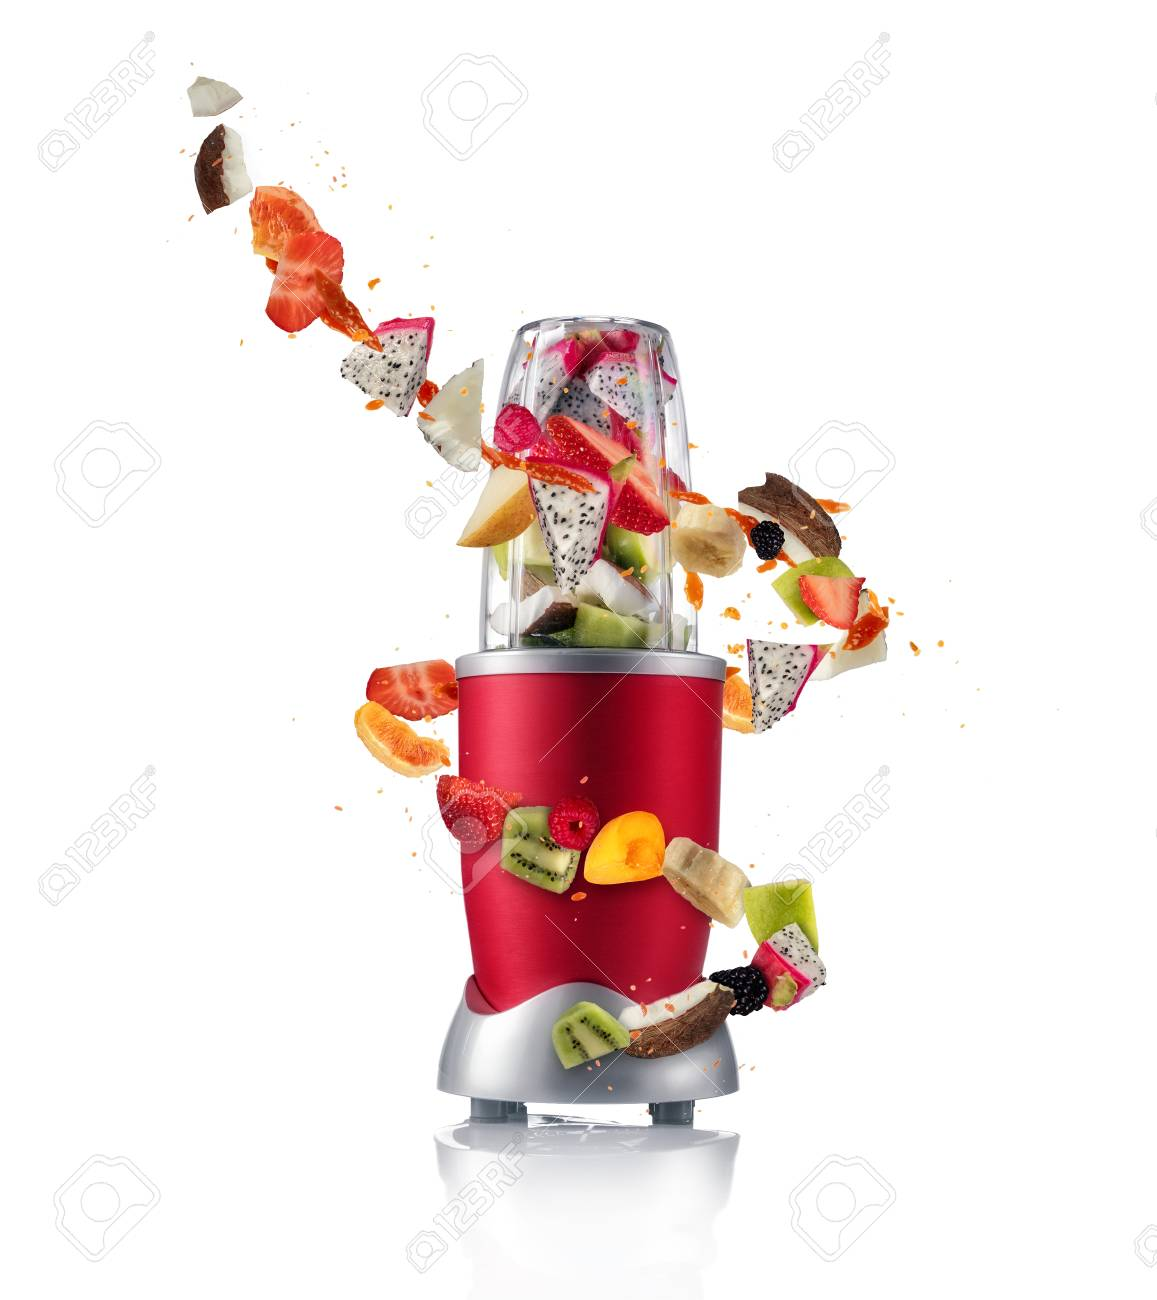 Smoothie maker mixer with pieces of fruit ingredients, isolated on white background. Healthy drink and lifestyle - 97362753